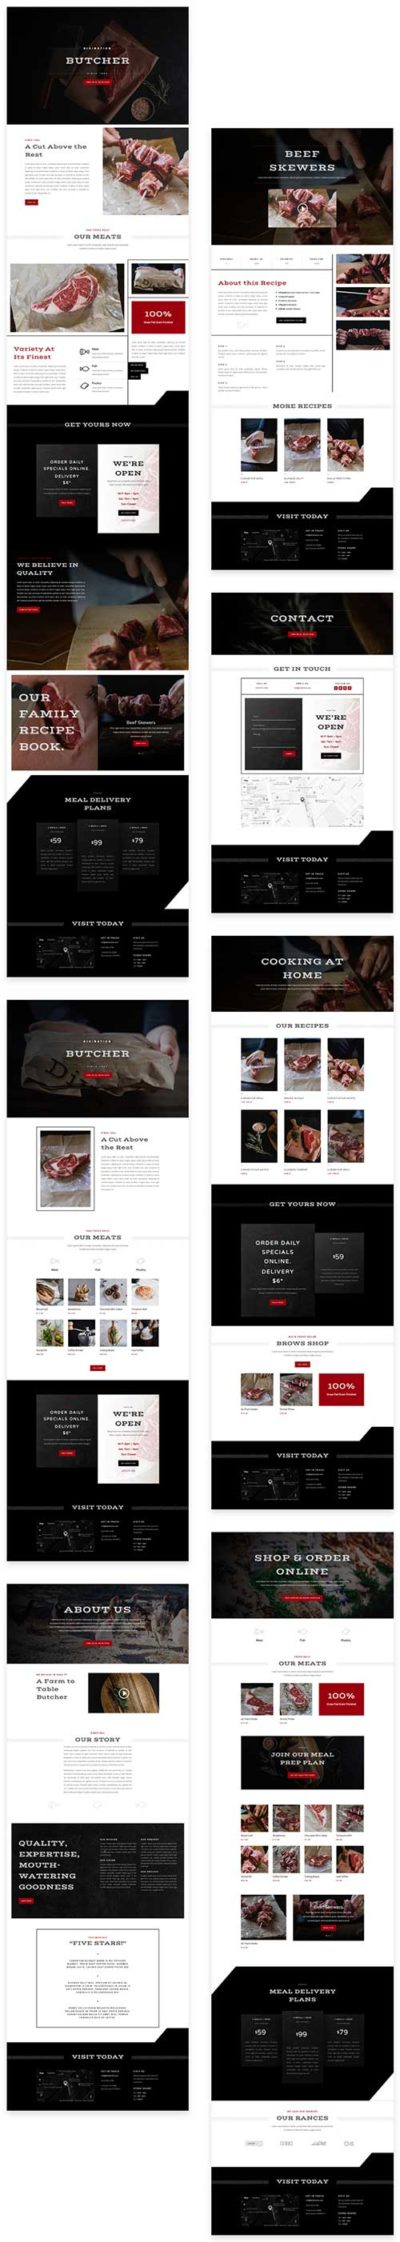 butchers divi layout